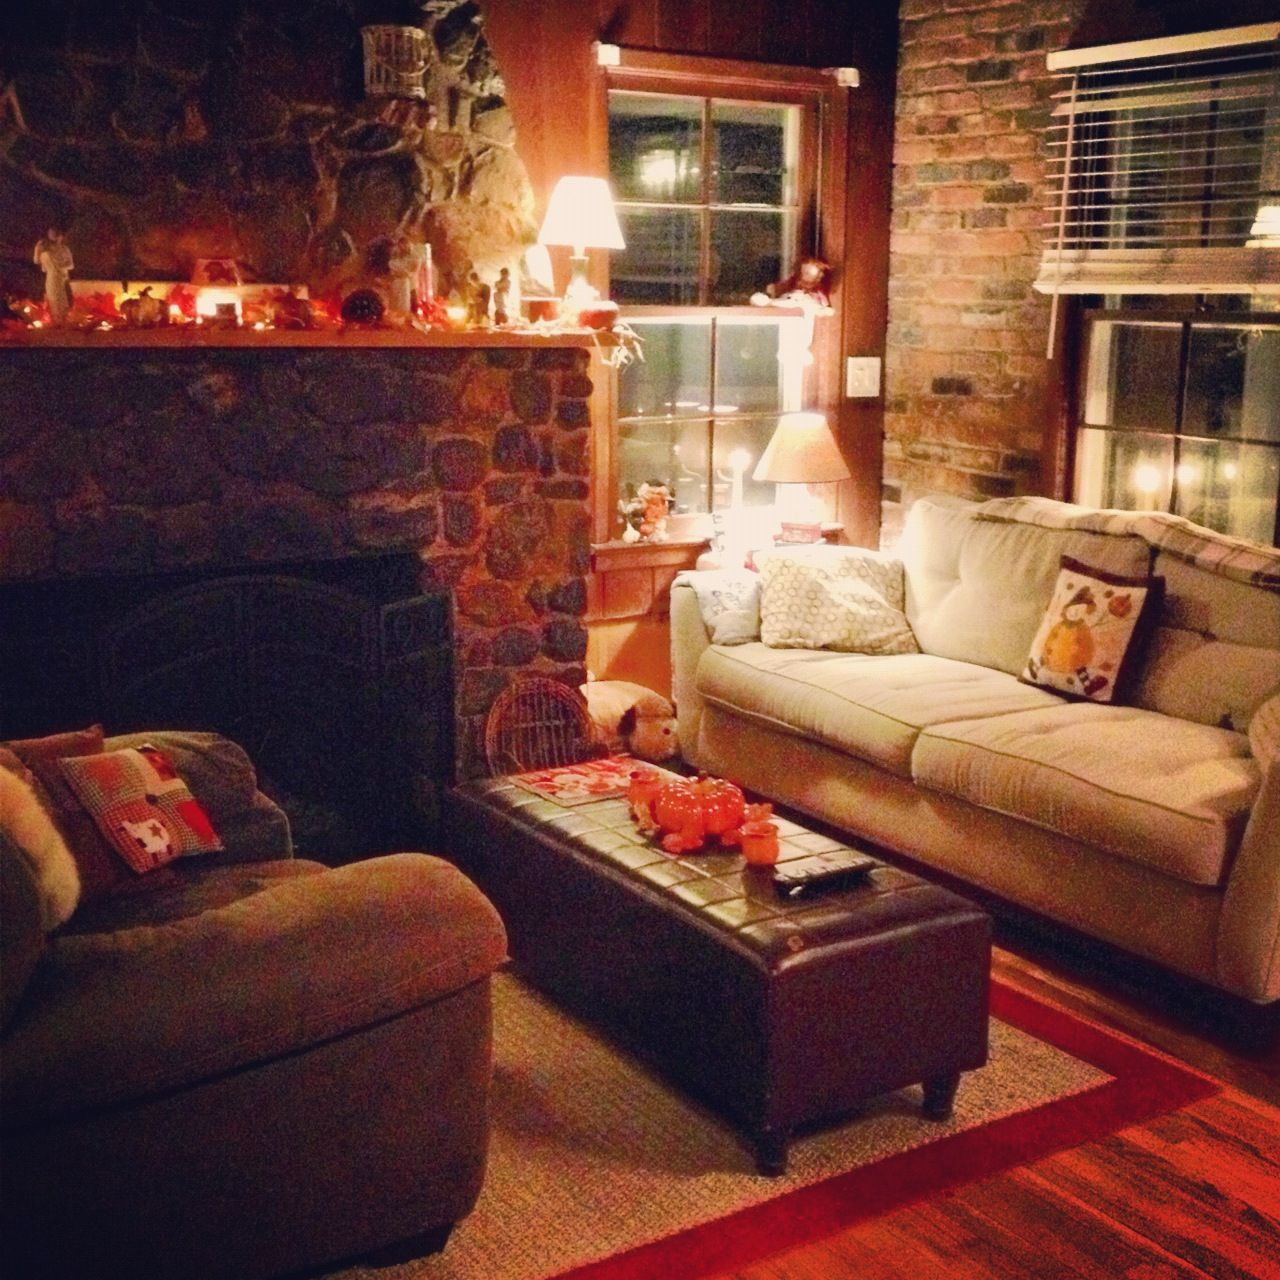 Cozy Fall In My House ☺